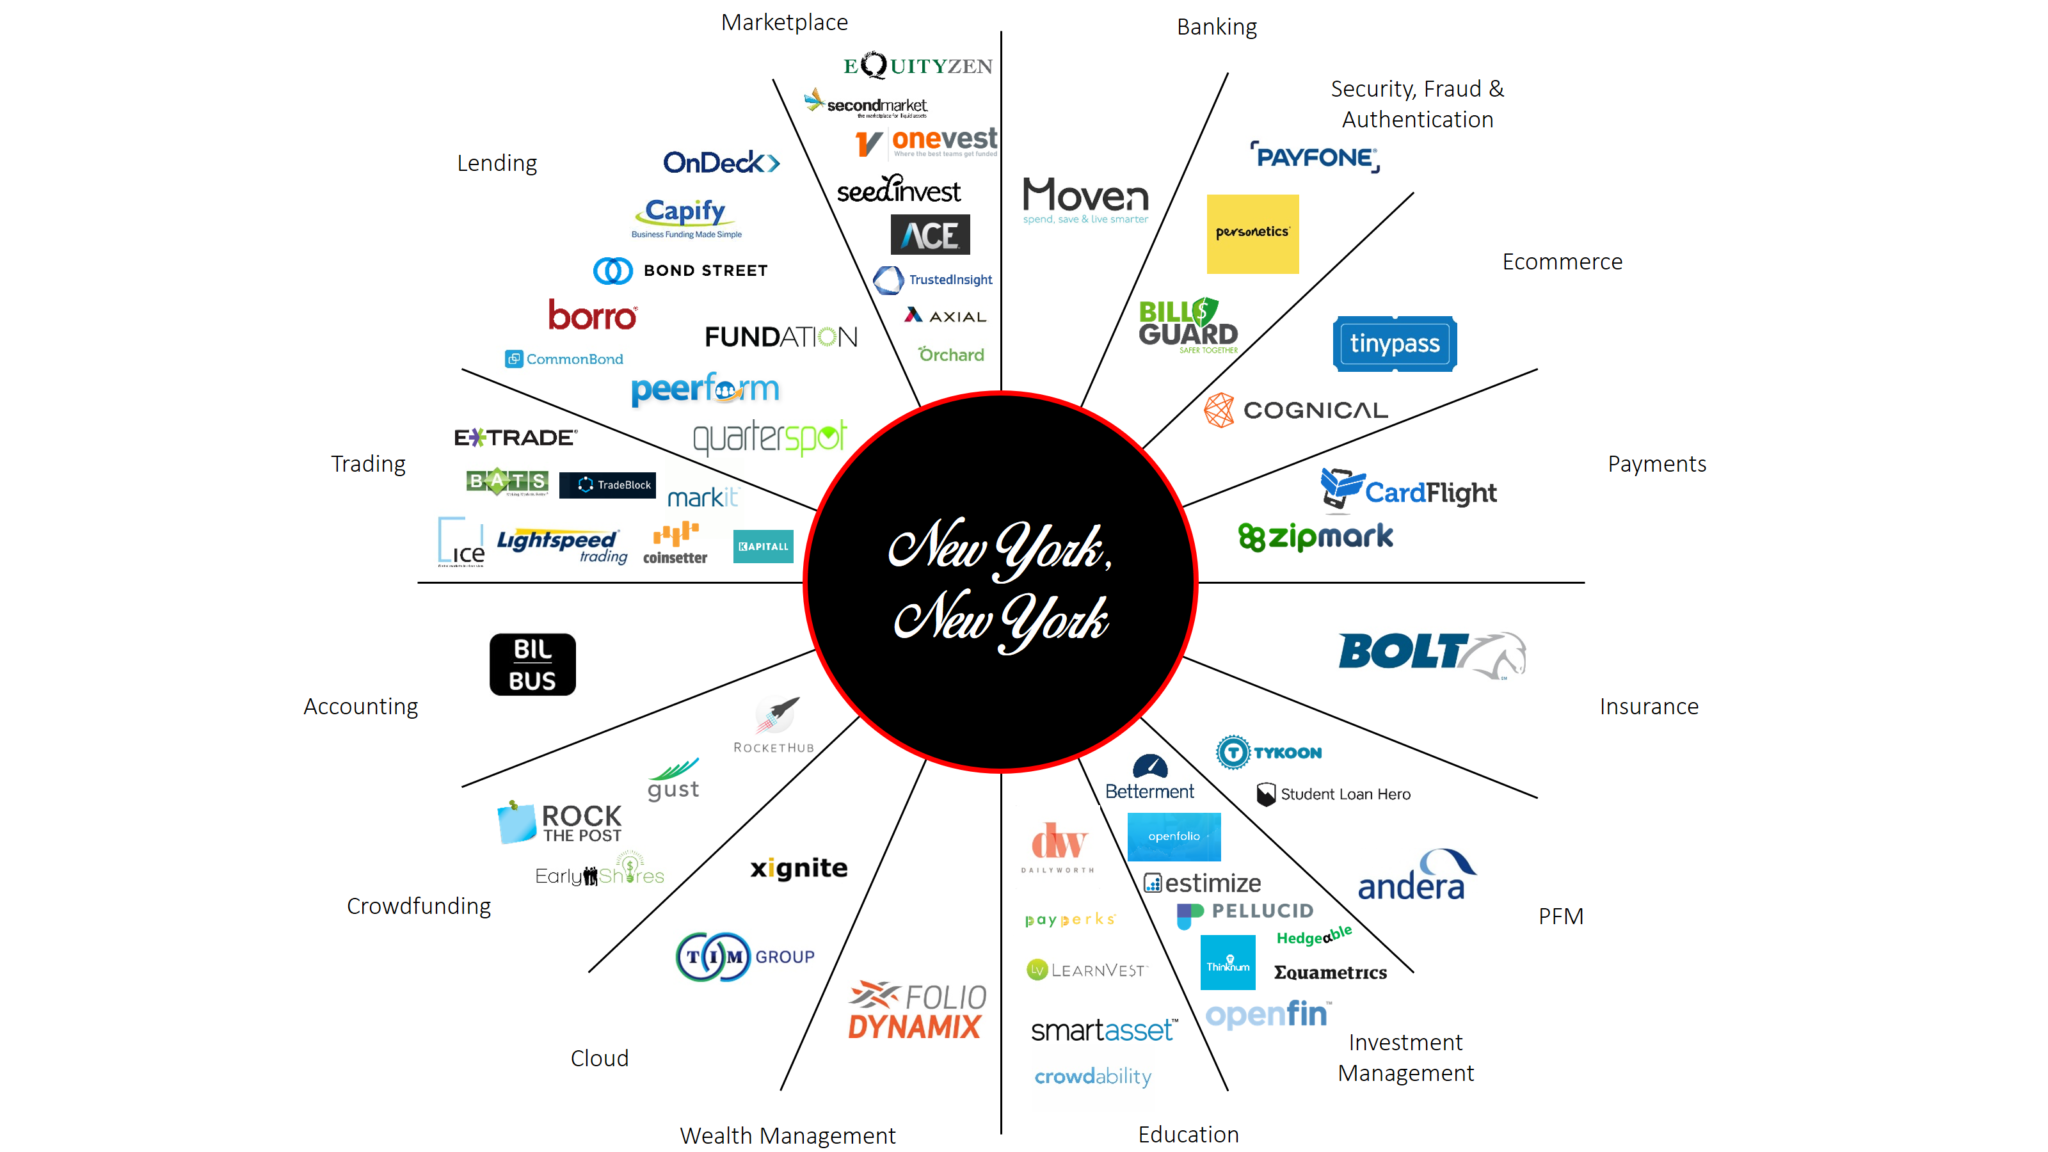 31 Hottest FinTech Startups Defining the New York FinTech Industry